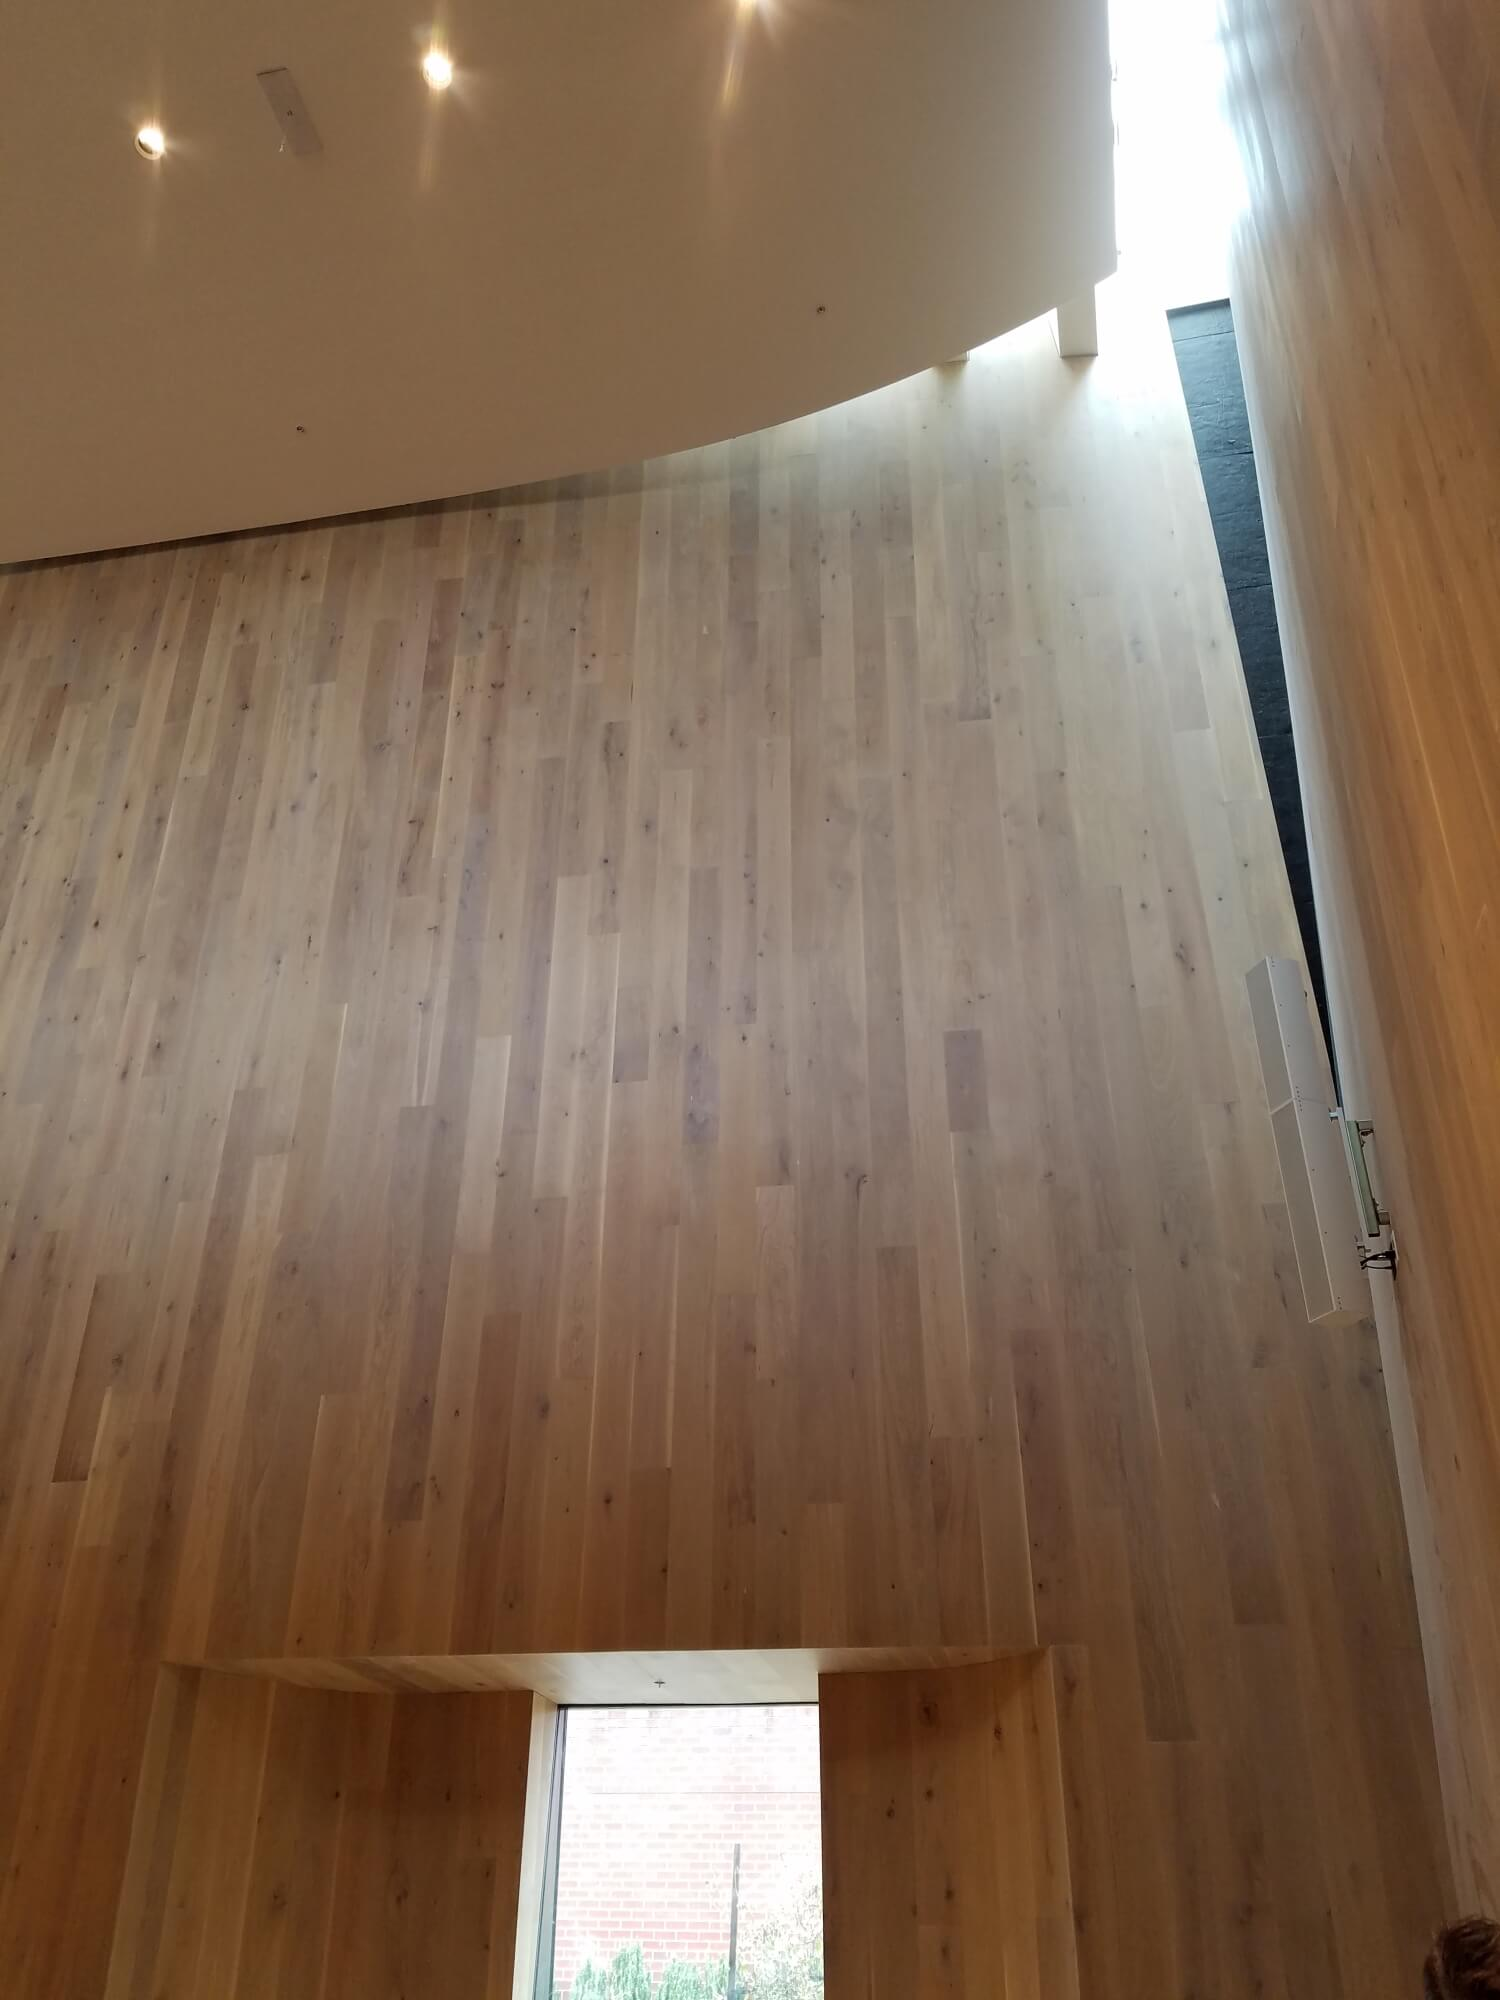 University of Oregon concert hall has white oak walls curved out to direct sound upwards.